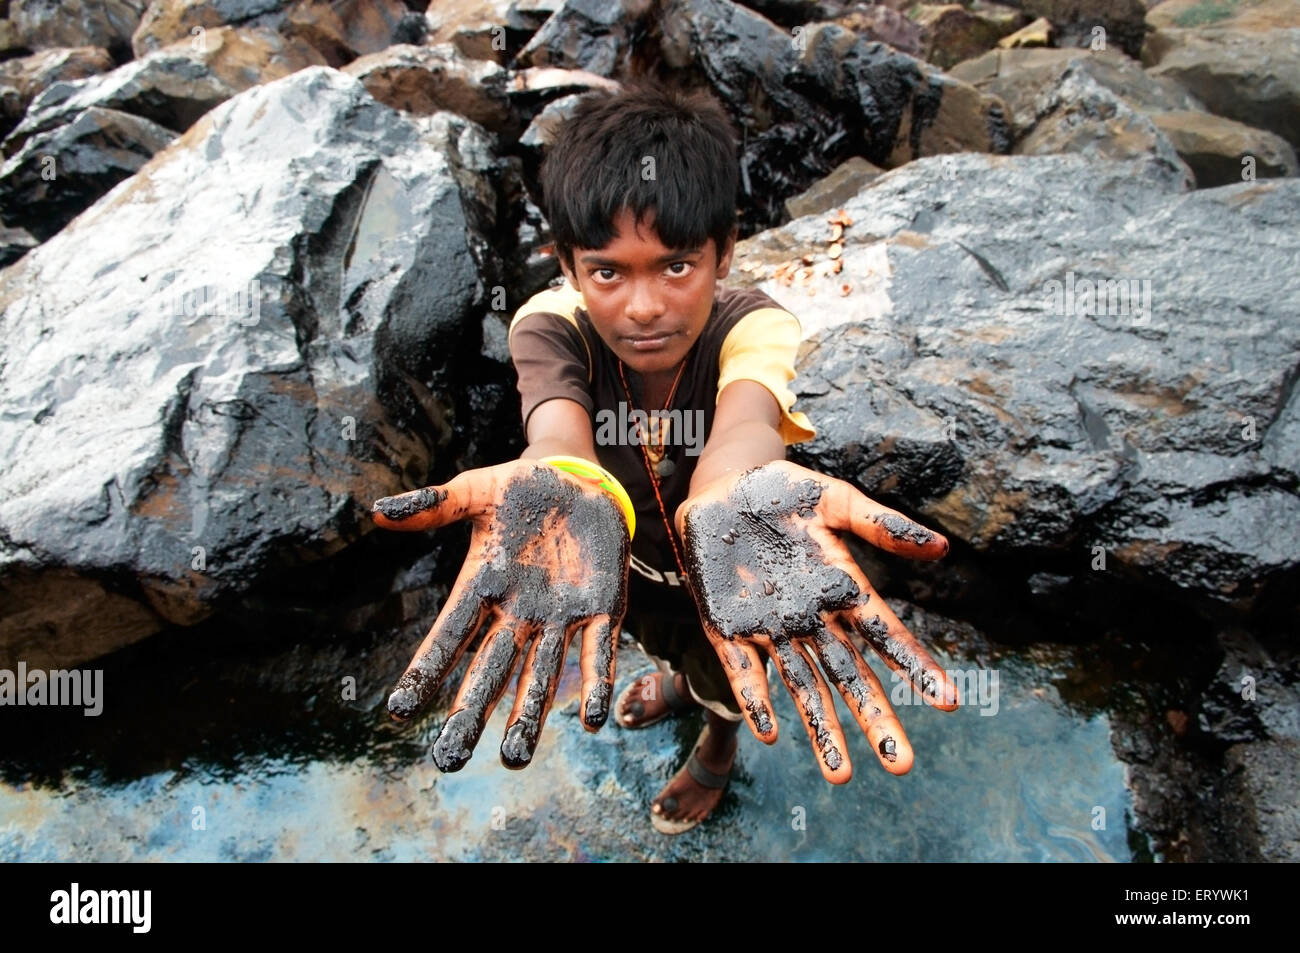 Boy showing oil soaked palm due to container ship chitra colliding in sea Bombay Mumbai ; Maharashtra ; India NOMR - Stock Image